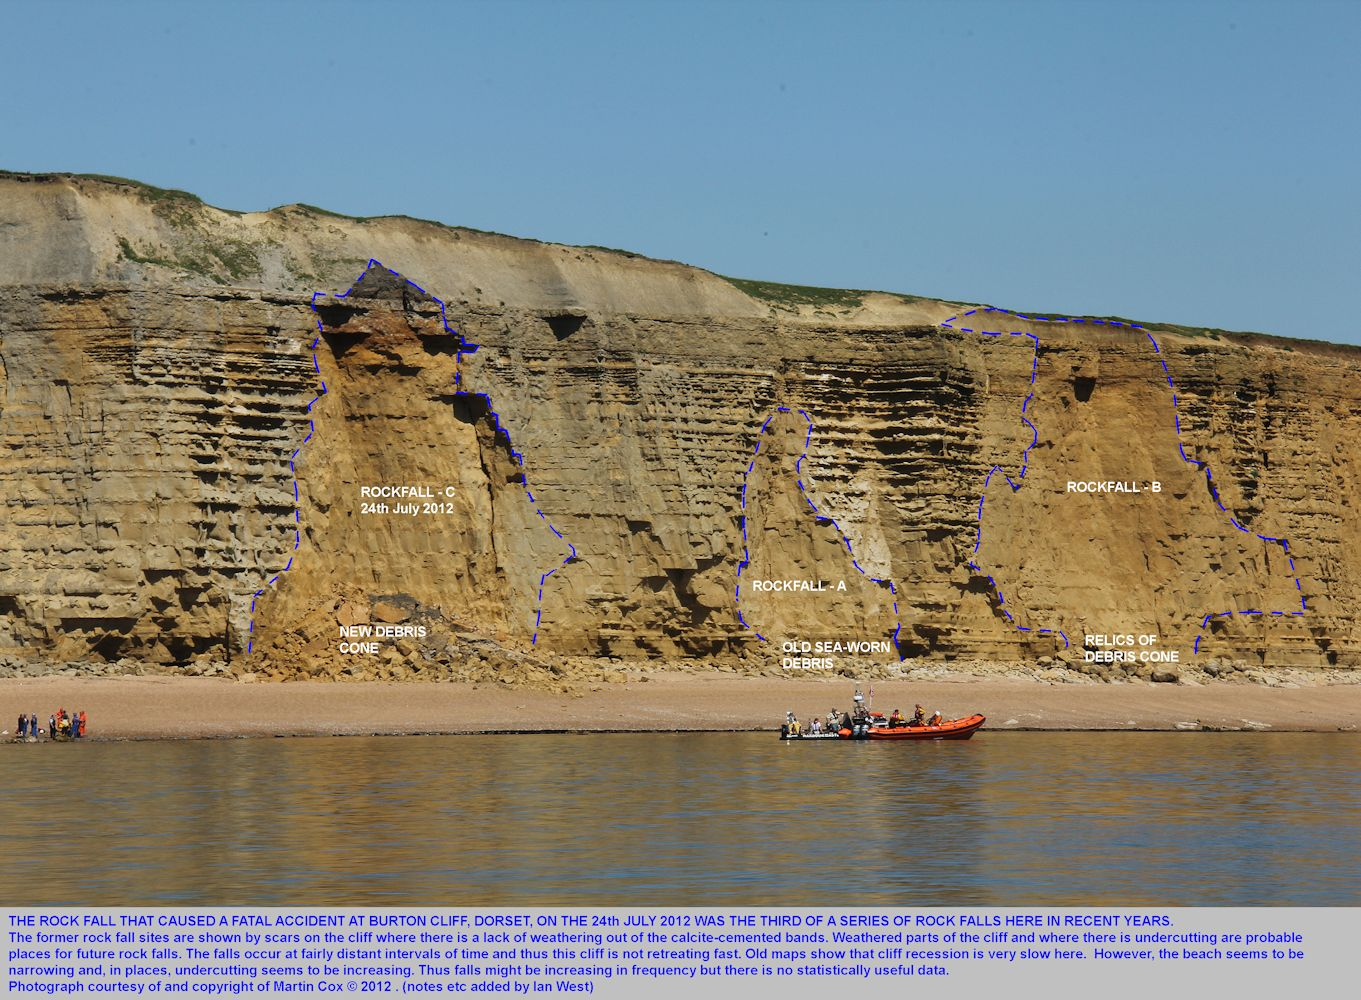 The fatal rock fall at Burton Cliff in 2012 was the third of three recent rock falls on those cliffs, Burton Bradstock, Dorset